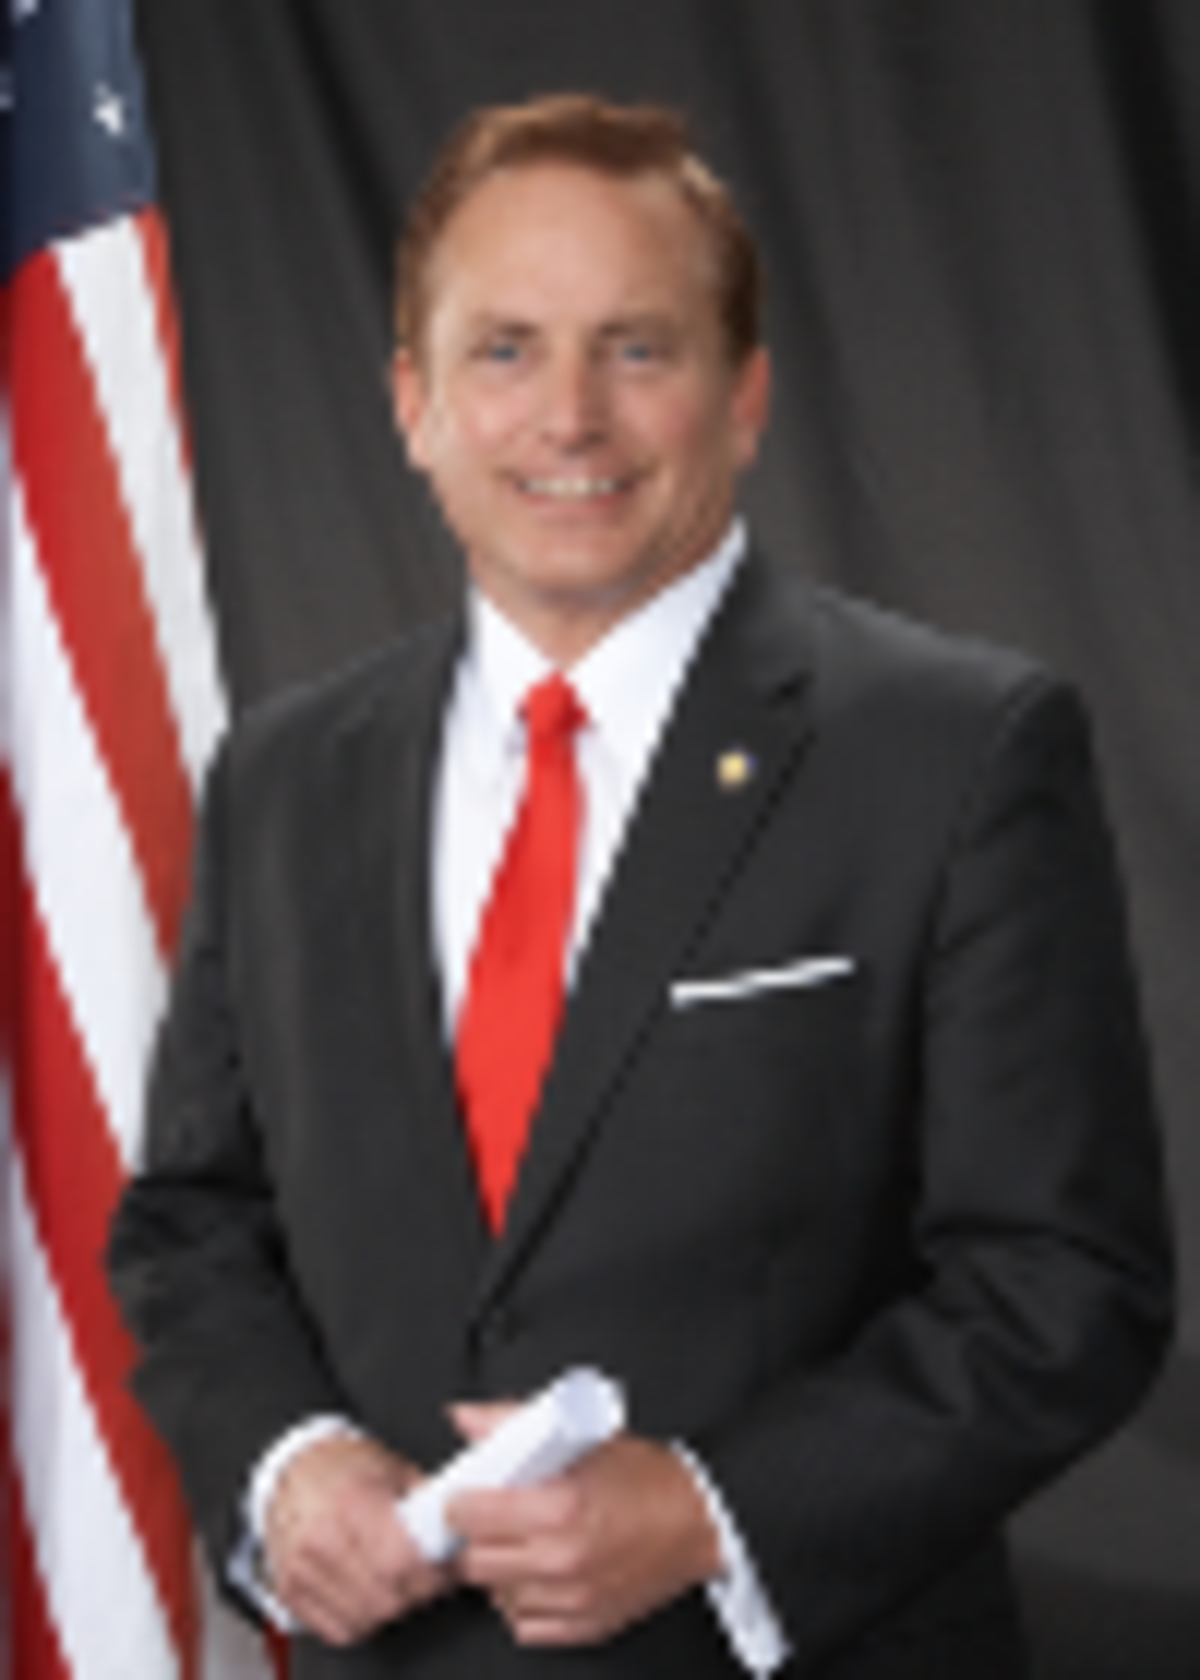 Iowa Secretary of State Paul Pate endorses Cedar Bayou Park